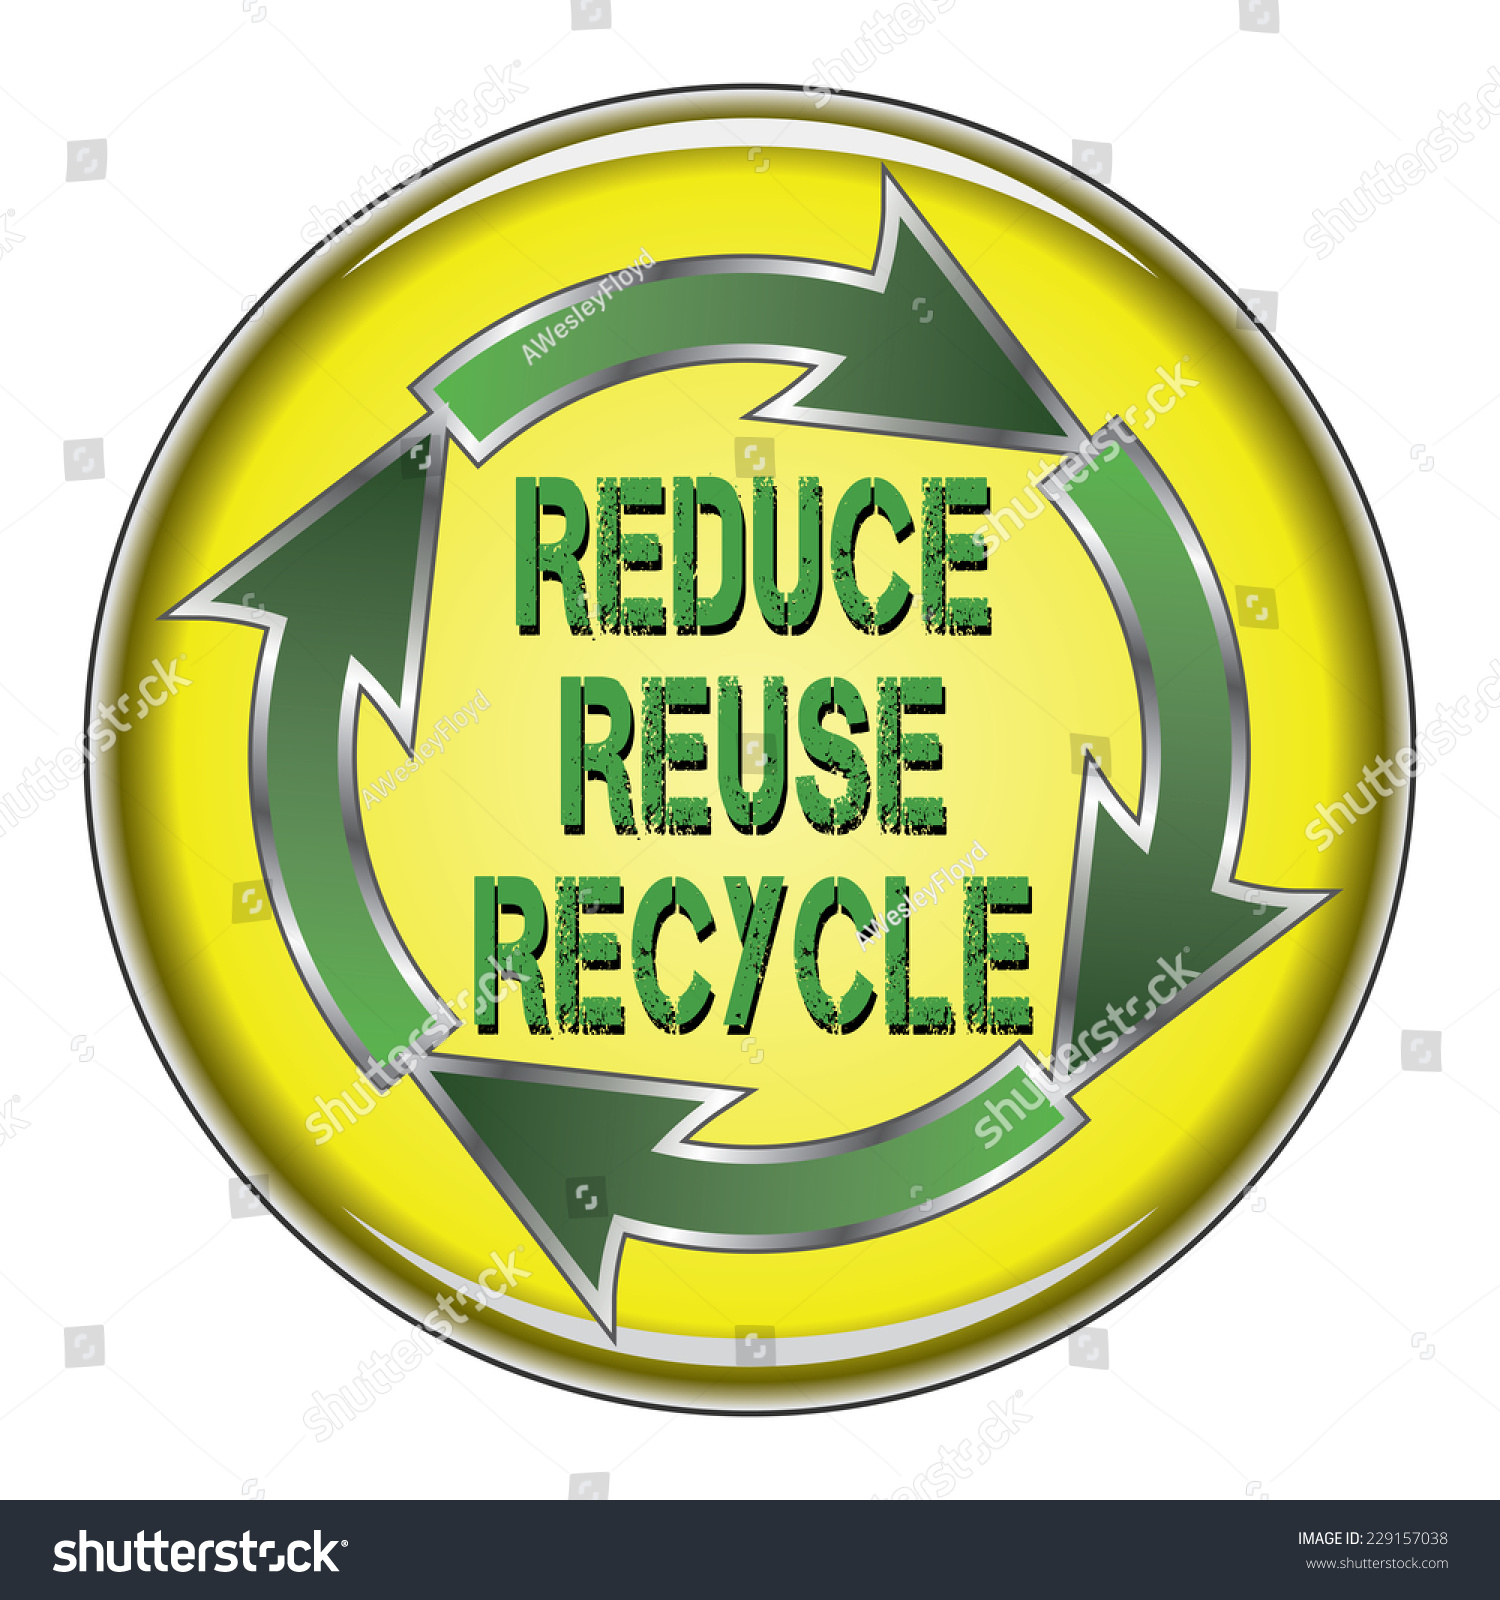 Reduce Reuse Recycle Illustration Recycle Symbol Stock Illustration